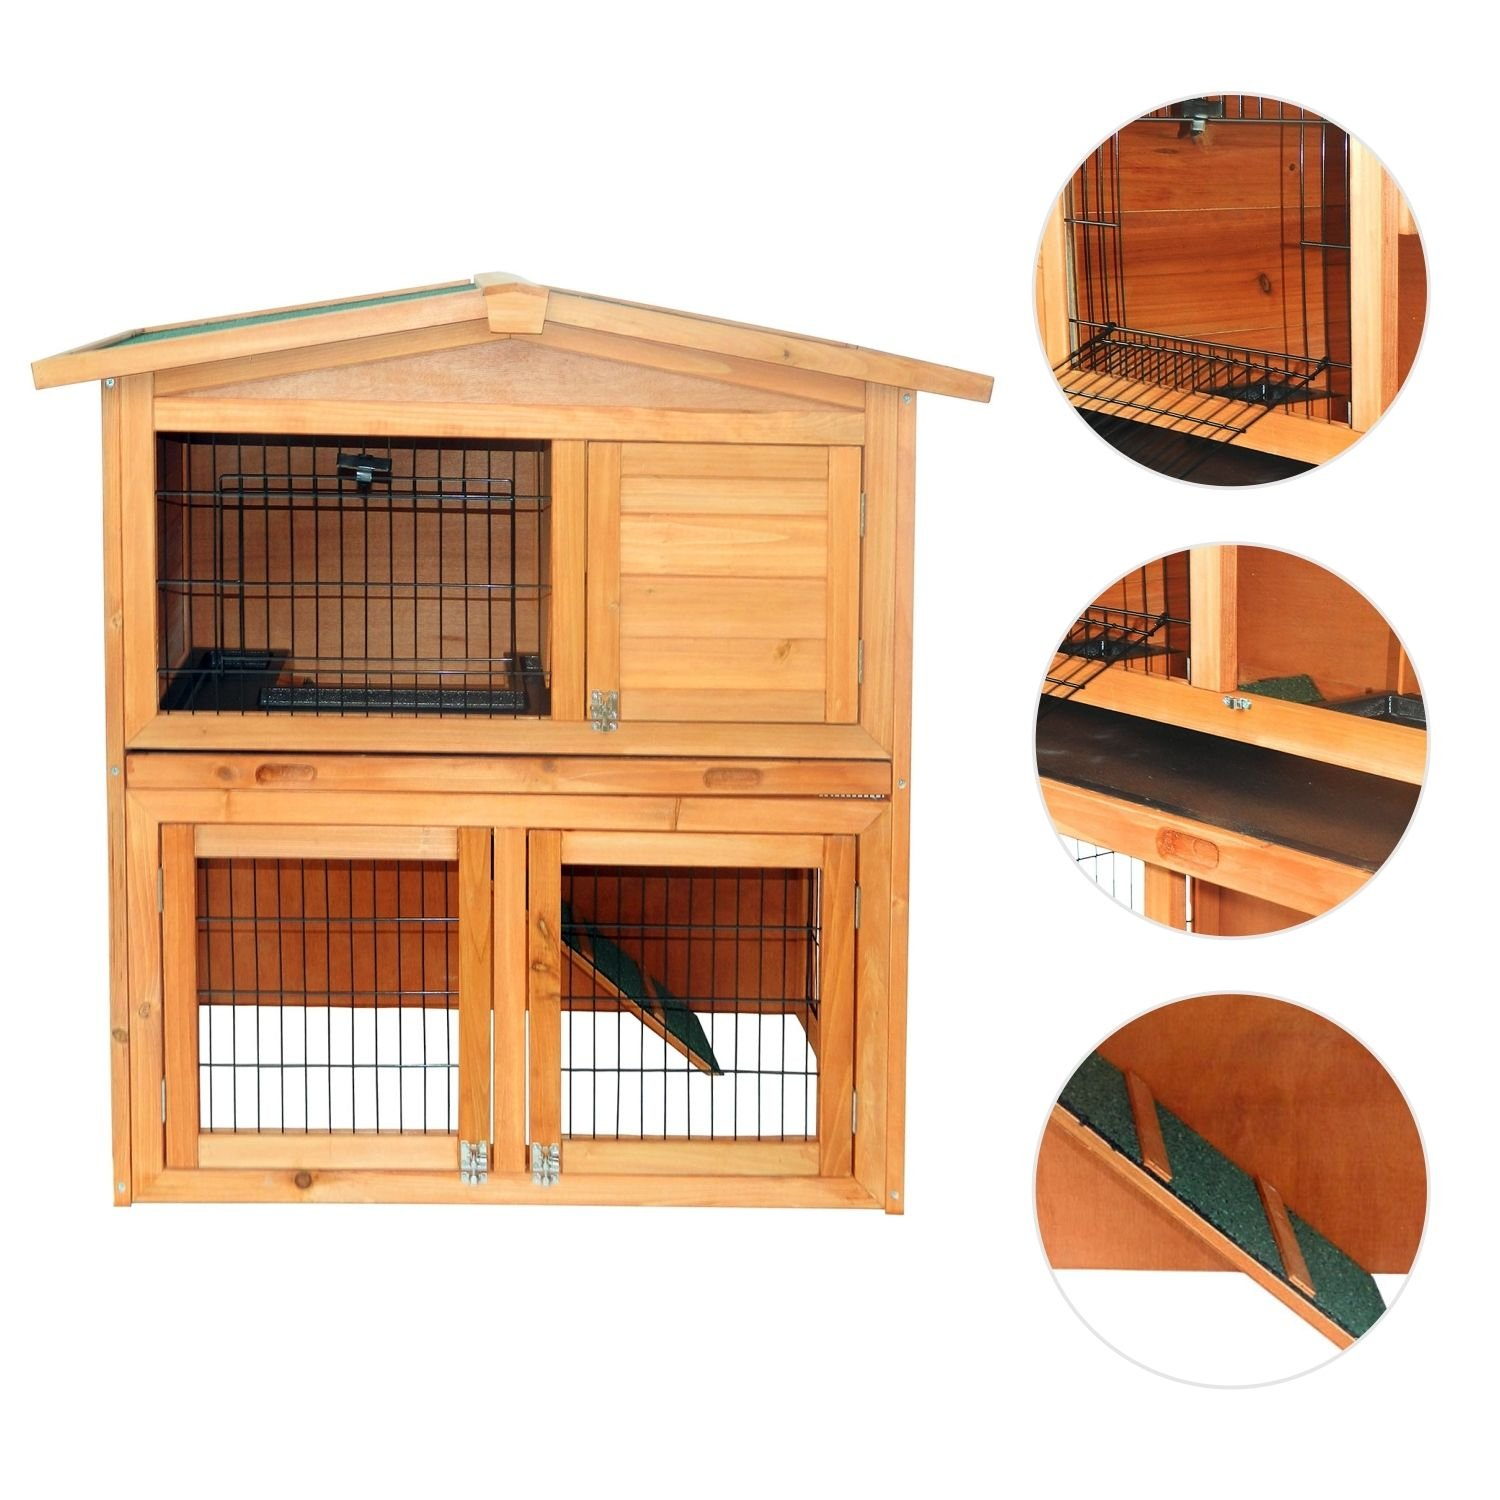 Wooden Rabbit Hutch Small Animal House Pet Cage Chicken Coop A-Frame 40''Pet Holds Cages Home - House Deals by House Deals (Image #4)